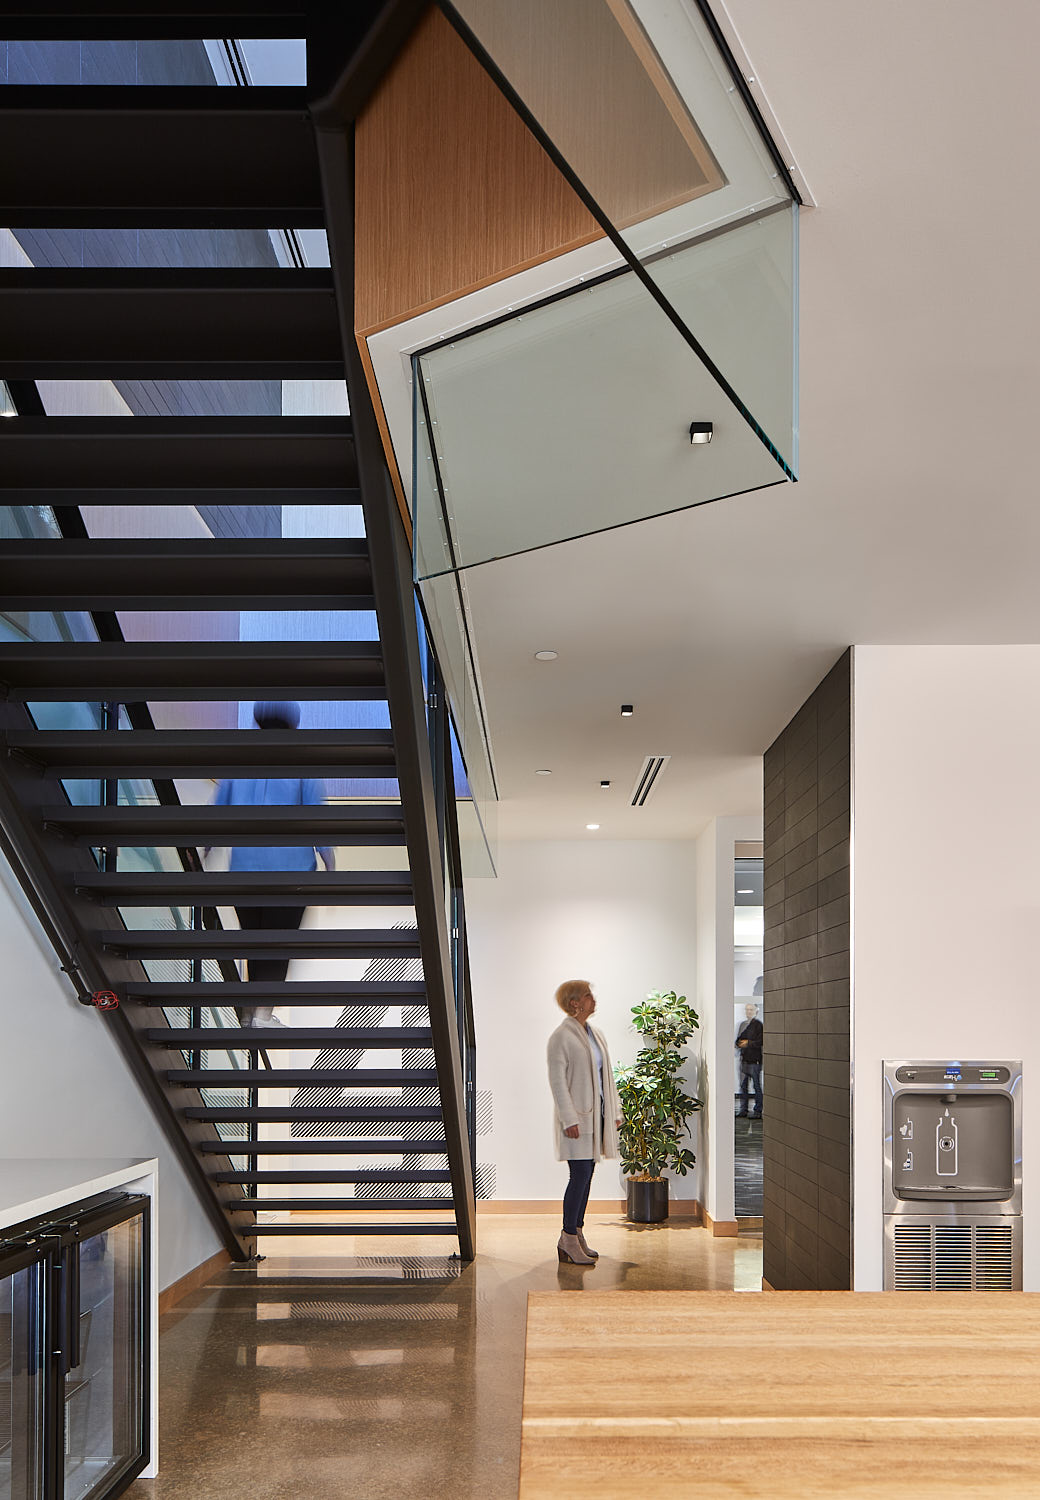 121-BH Architects PCL Office